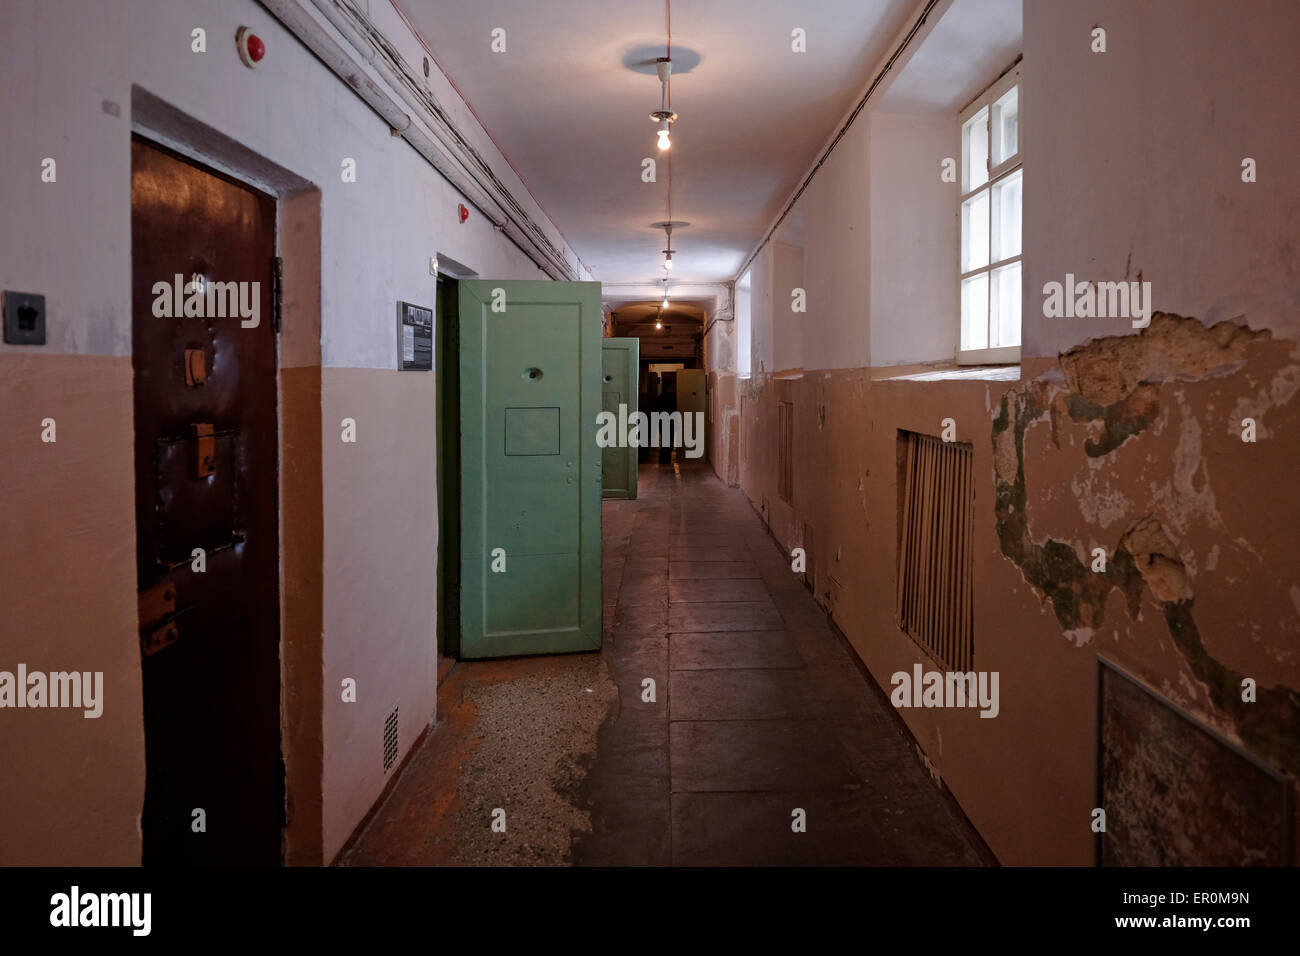 The former KGB prison now the museum of Genocide Victims in the city of Vilnius capital of Lithuania - Stock Image